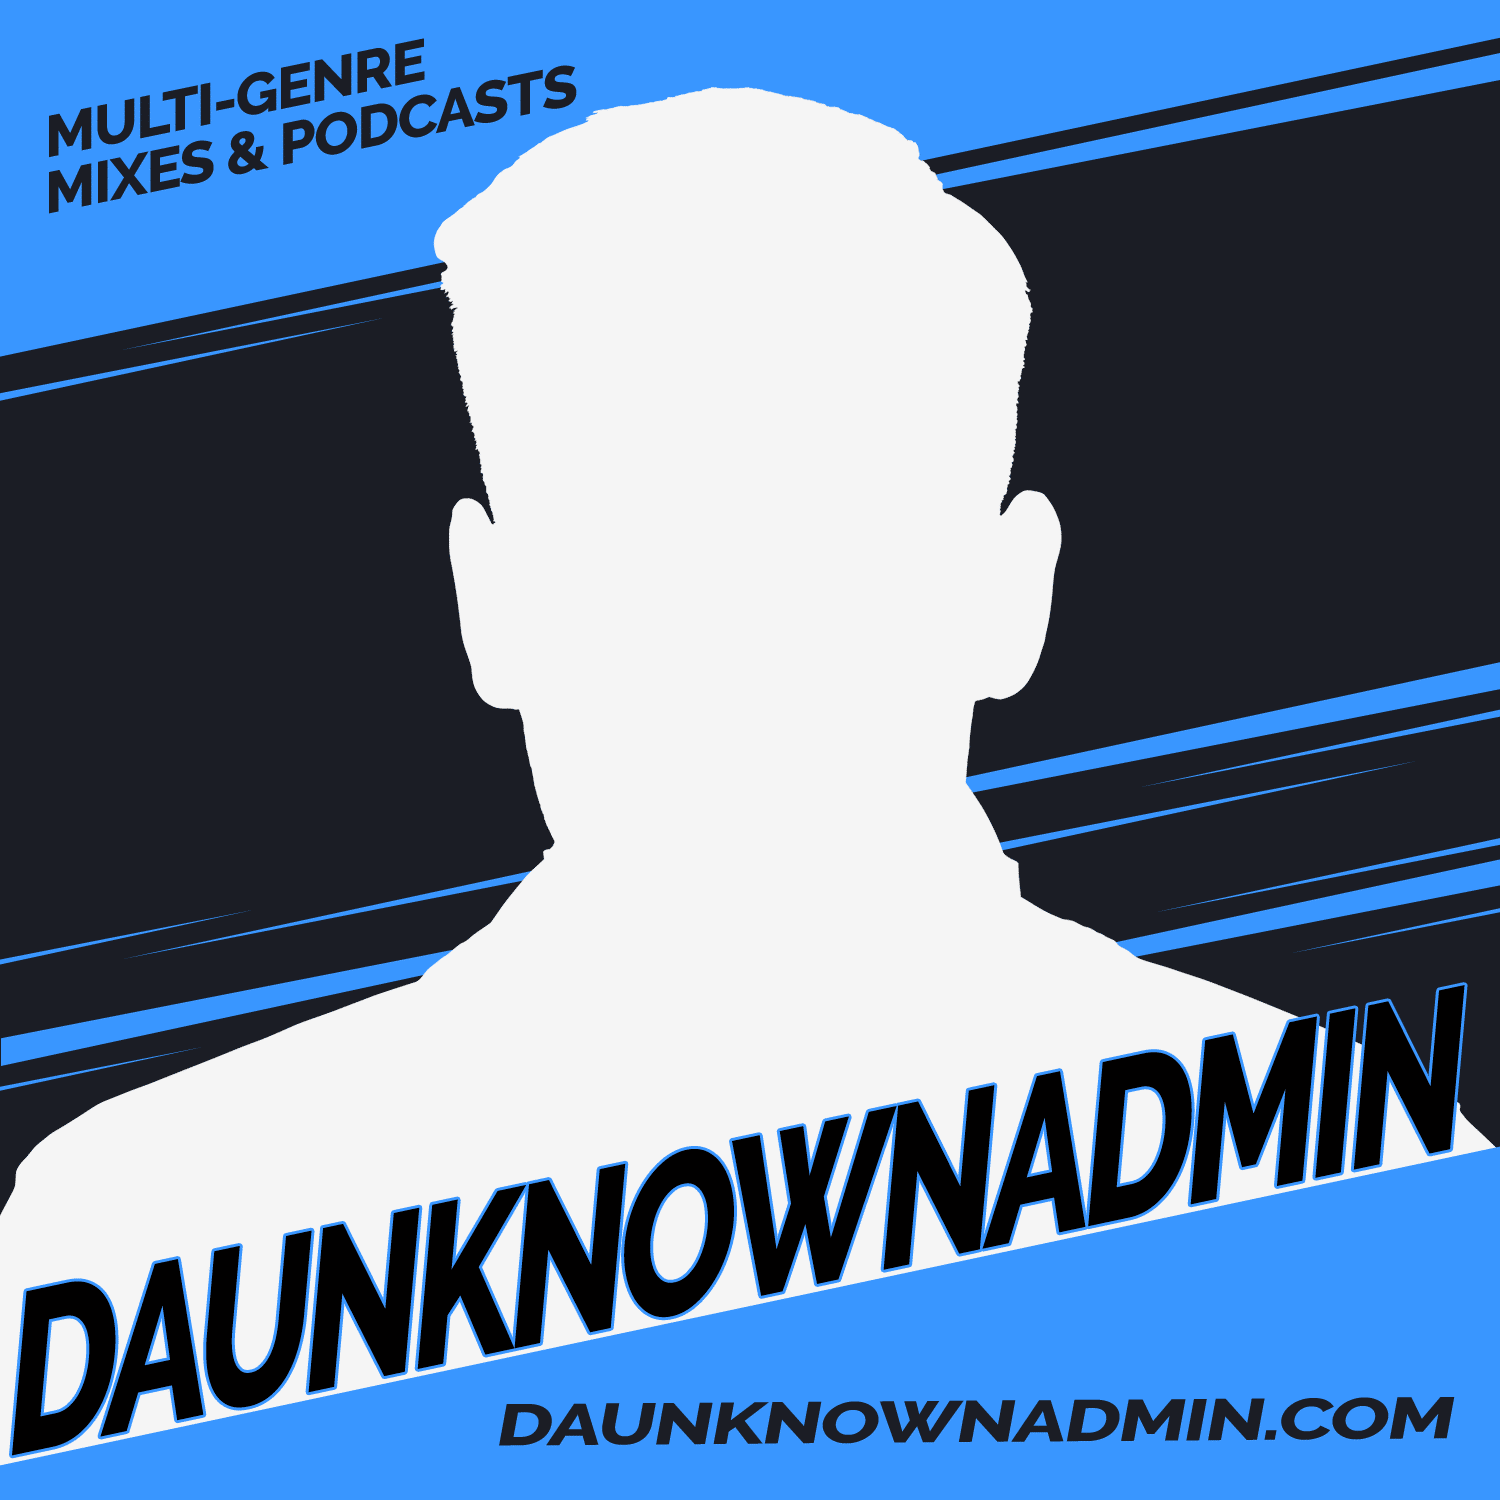 DaUnknownAdmin Podcast